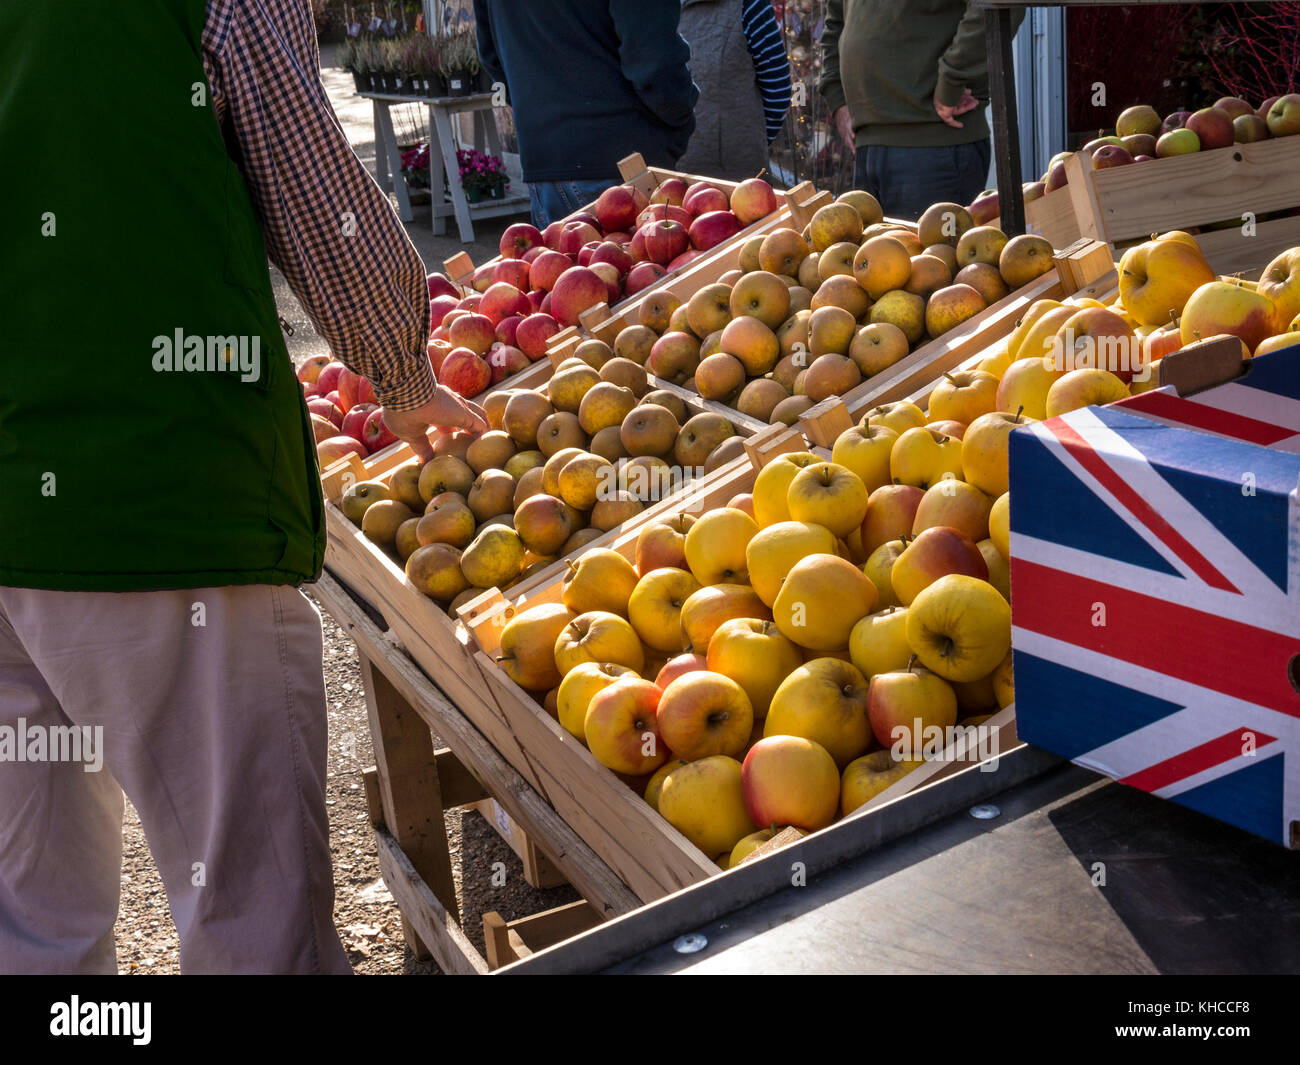 Buying browsing choosing English apples at an outdoor British Farmers Market stall UK - Stock Image